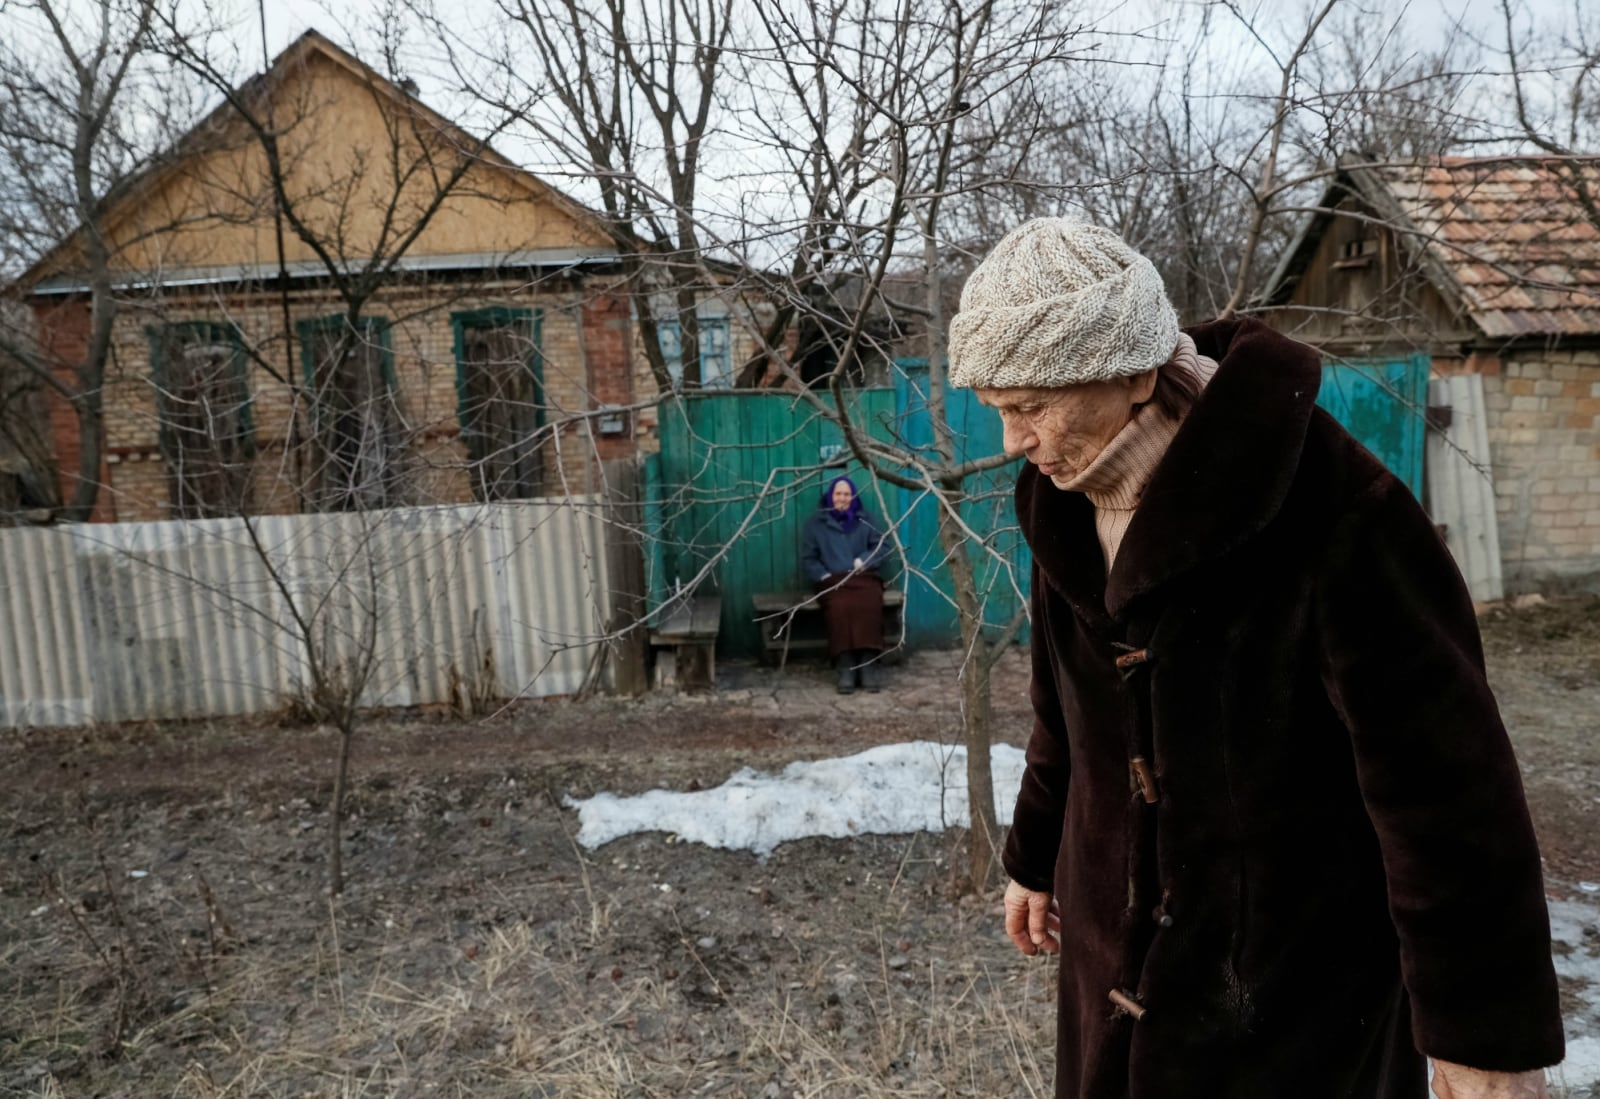 A woman sits outside her house as windows are covered with wood to protect from shrapnel near the front line in the village of Zaitseve, Ukraine, February 23, 2019. There are not many people left in Zaitseve, a village on the front line that divides Ukraine between government-controlled territory and the enclave controlled by Russian-backed separatist forces. Troops are stationed in trenches outside Zaitseve and government trucks risk rebel fire to bring bread, coal, firewood and other goods along a dirt road. REUTERS/Gleb Garanich